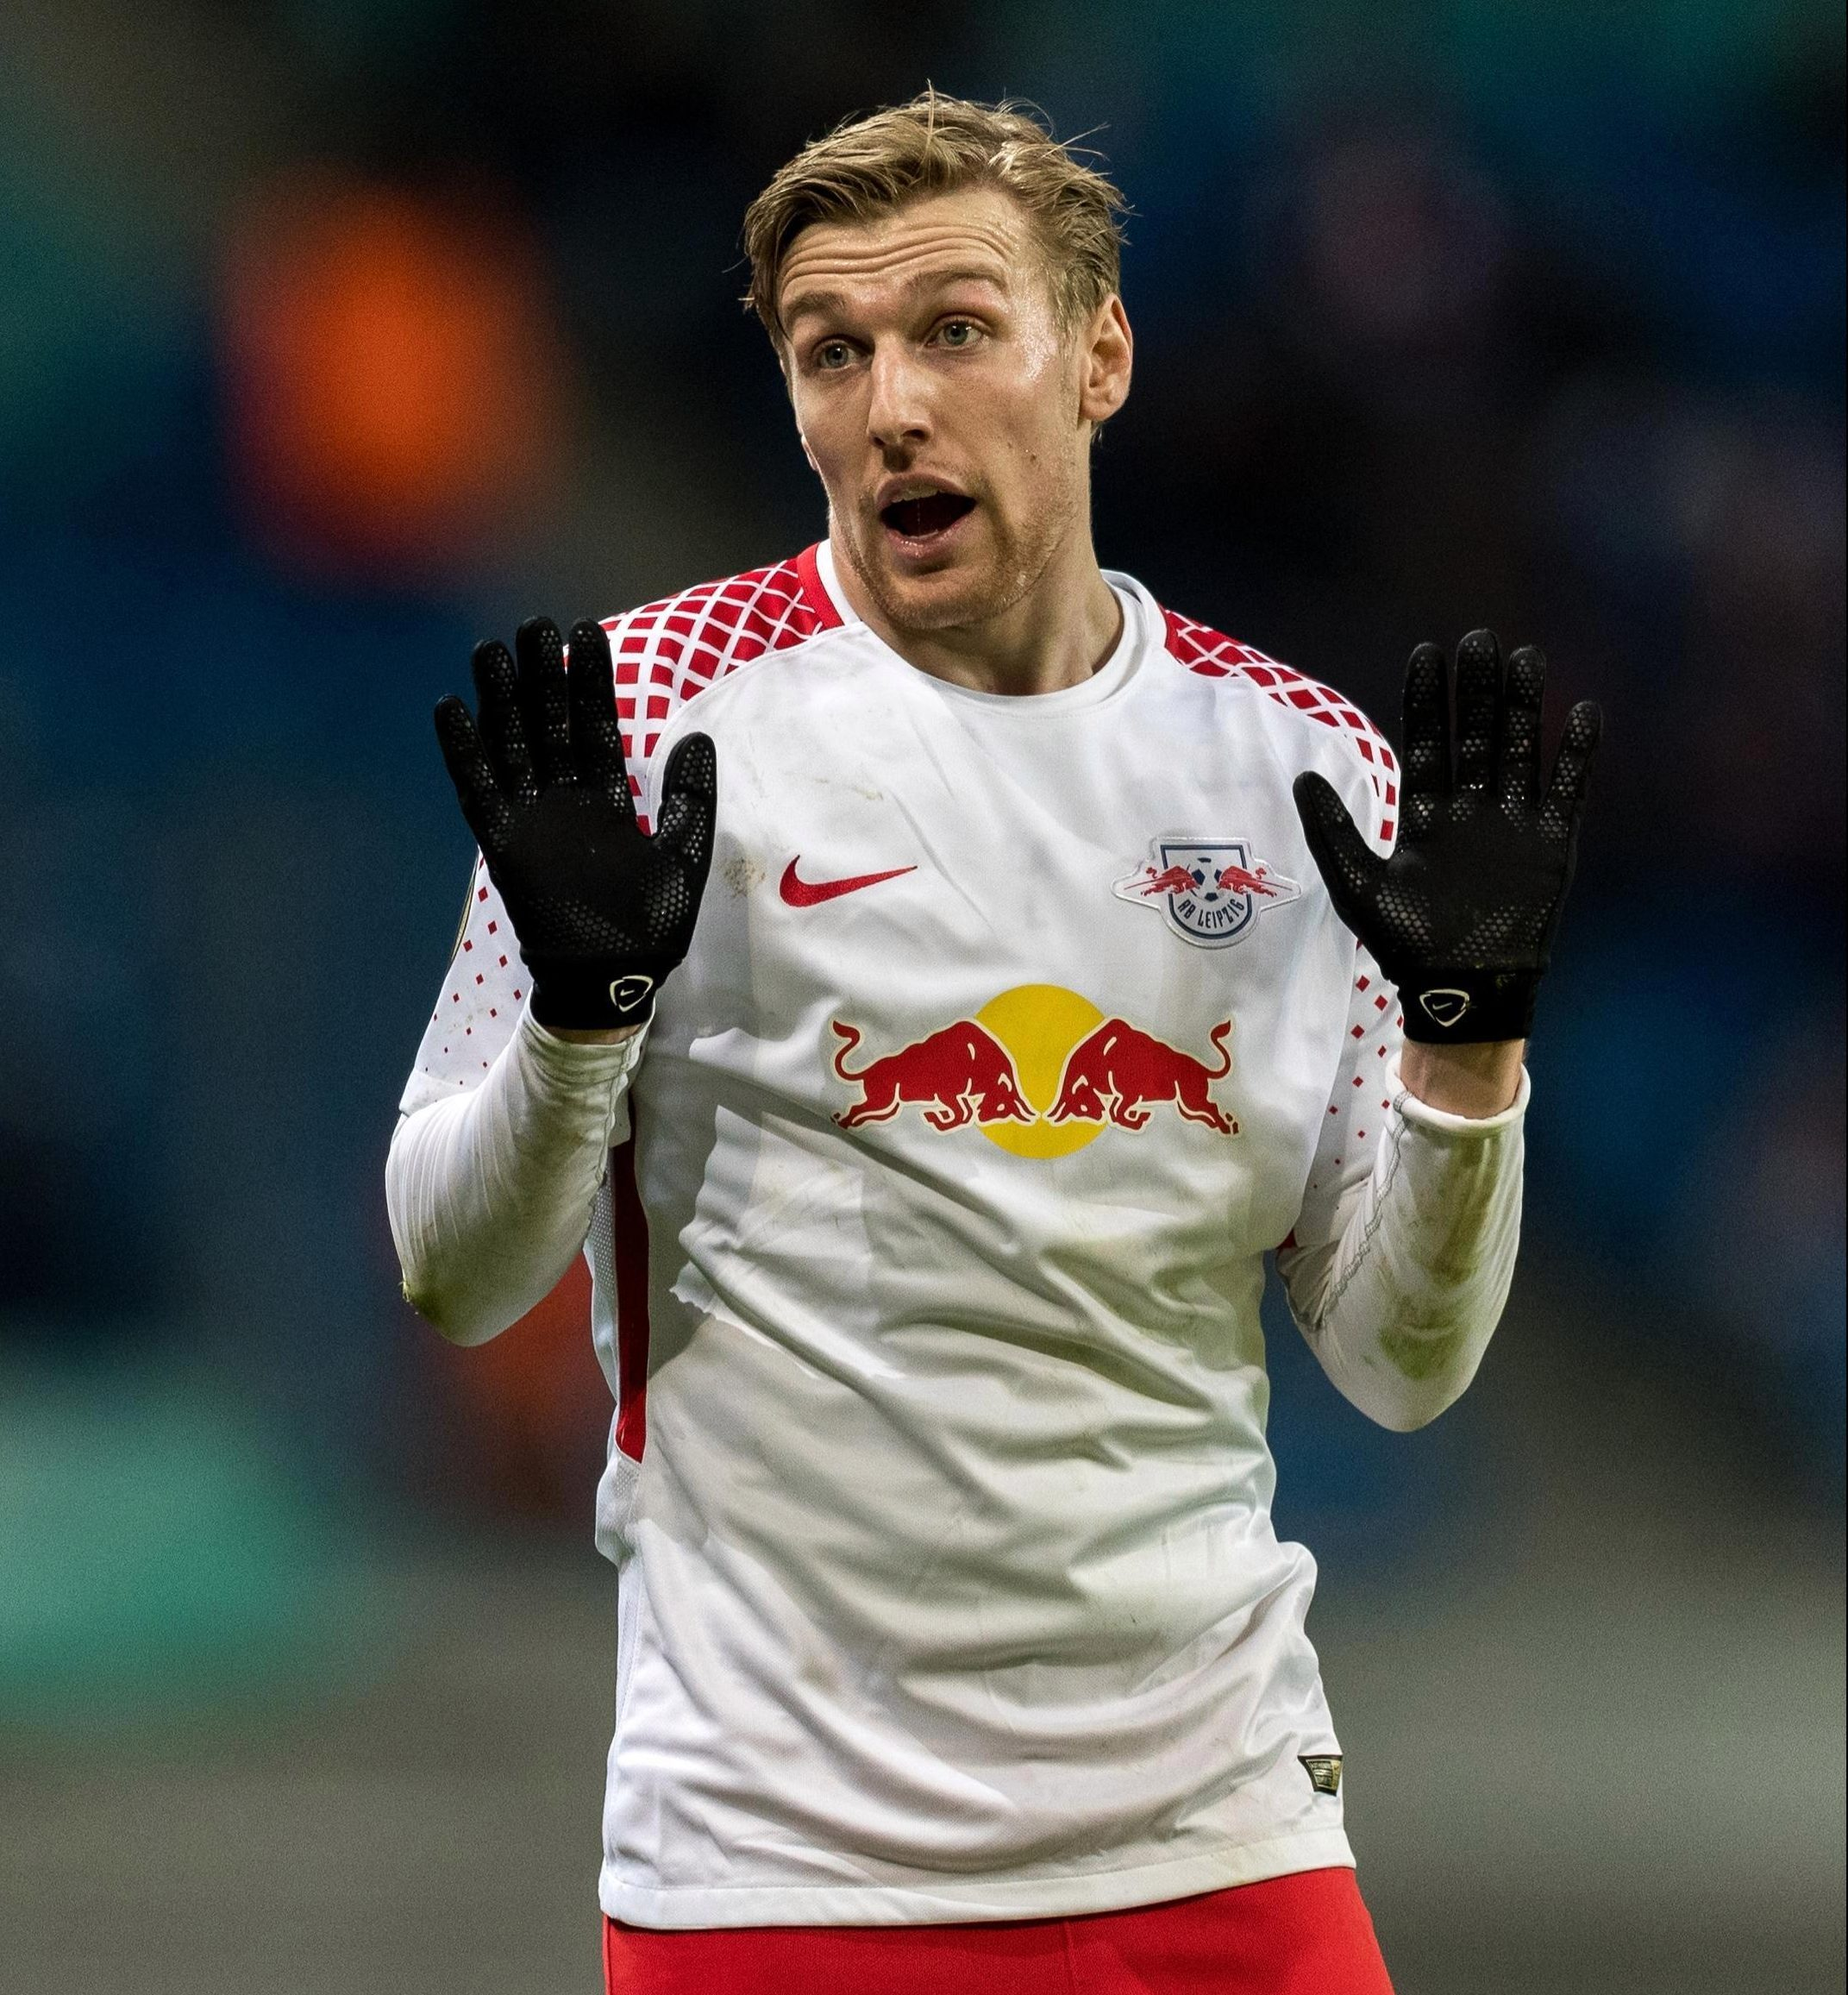 Arsenal back in for RB Leipzig star Emil Forsberg this summer after failed January swoop